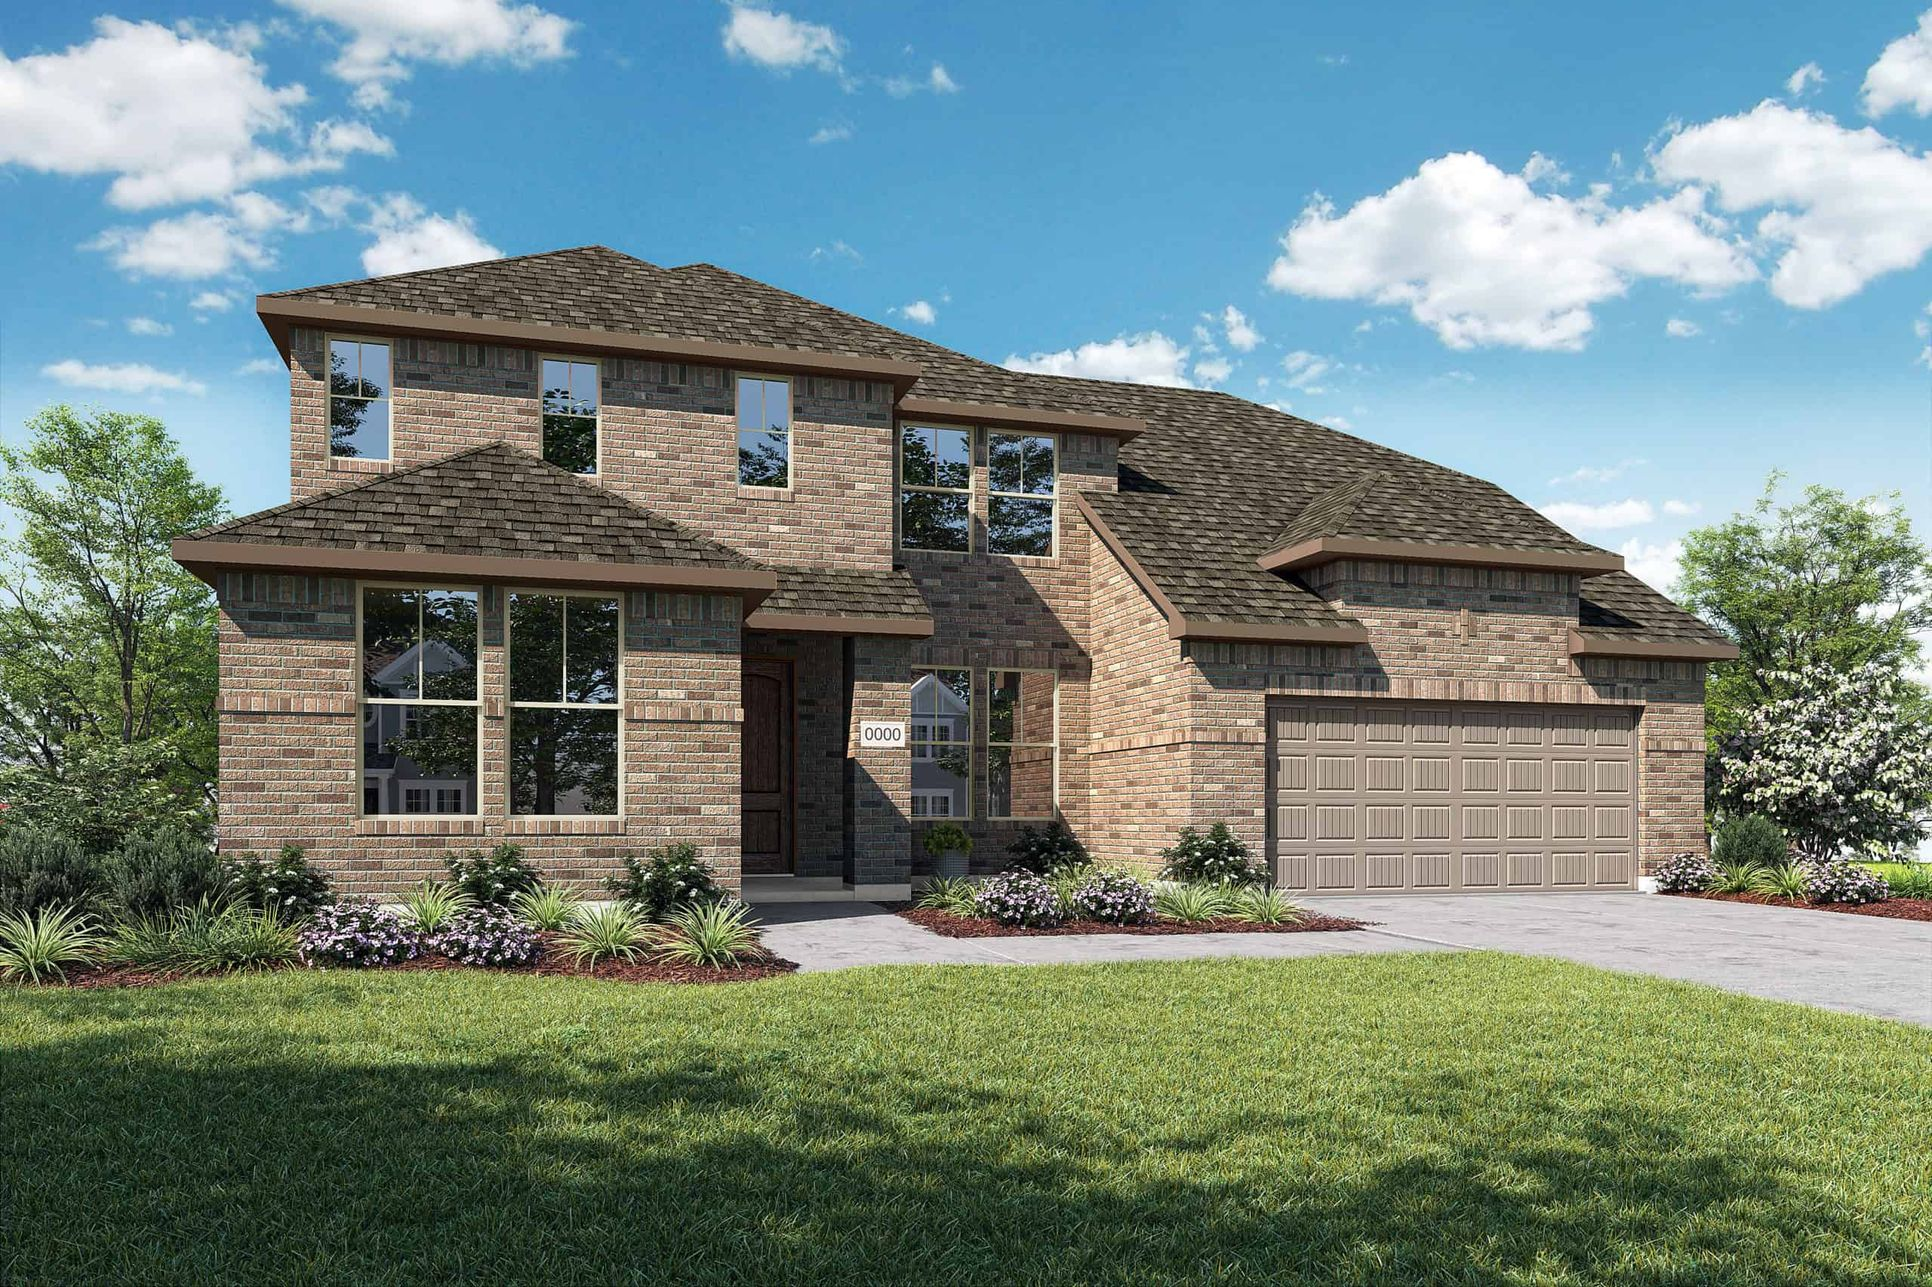 Elevation A:Elevation A is a two story full brick moden inspired home design with ample front windows to provide